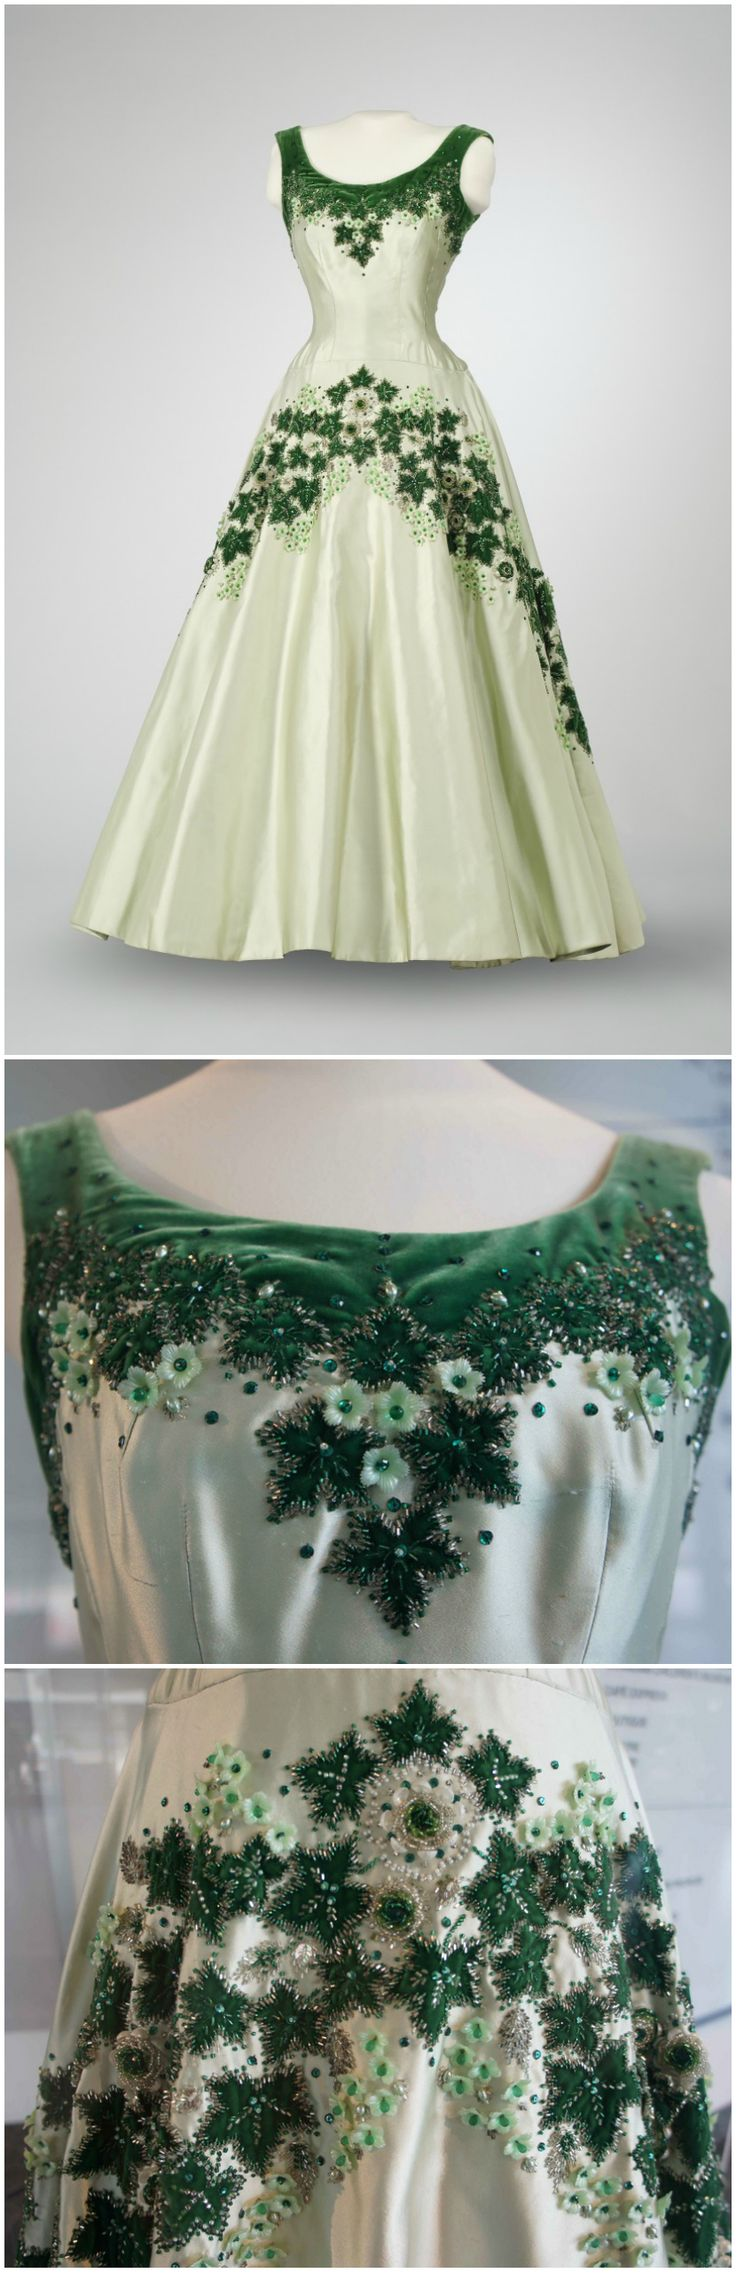 """Maple Leaf of Canada"" dress, designed by Norman Hartnell, London, 1957. Worn by Queen Elizabeth II at a state banquet at Rideau Hall, Ottawa, in 1957. Photos (Top): Musée de l'histoire 